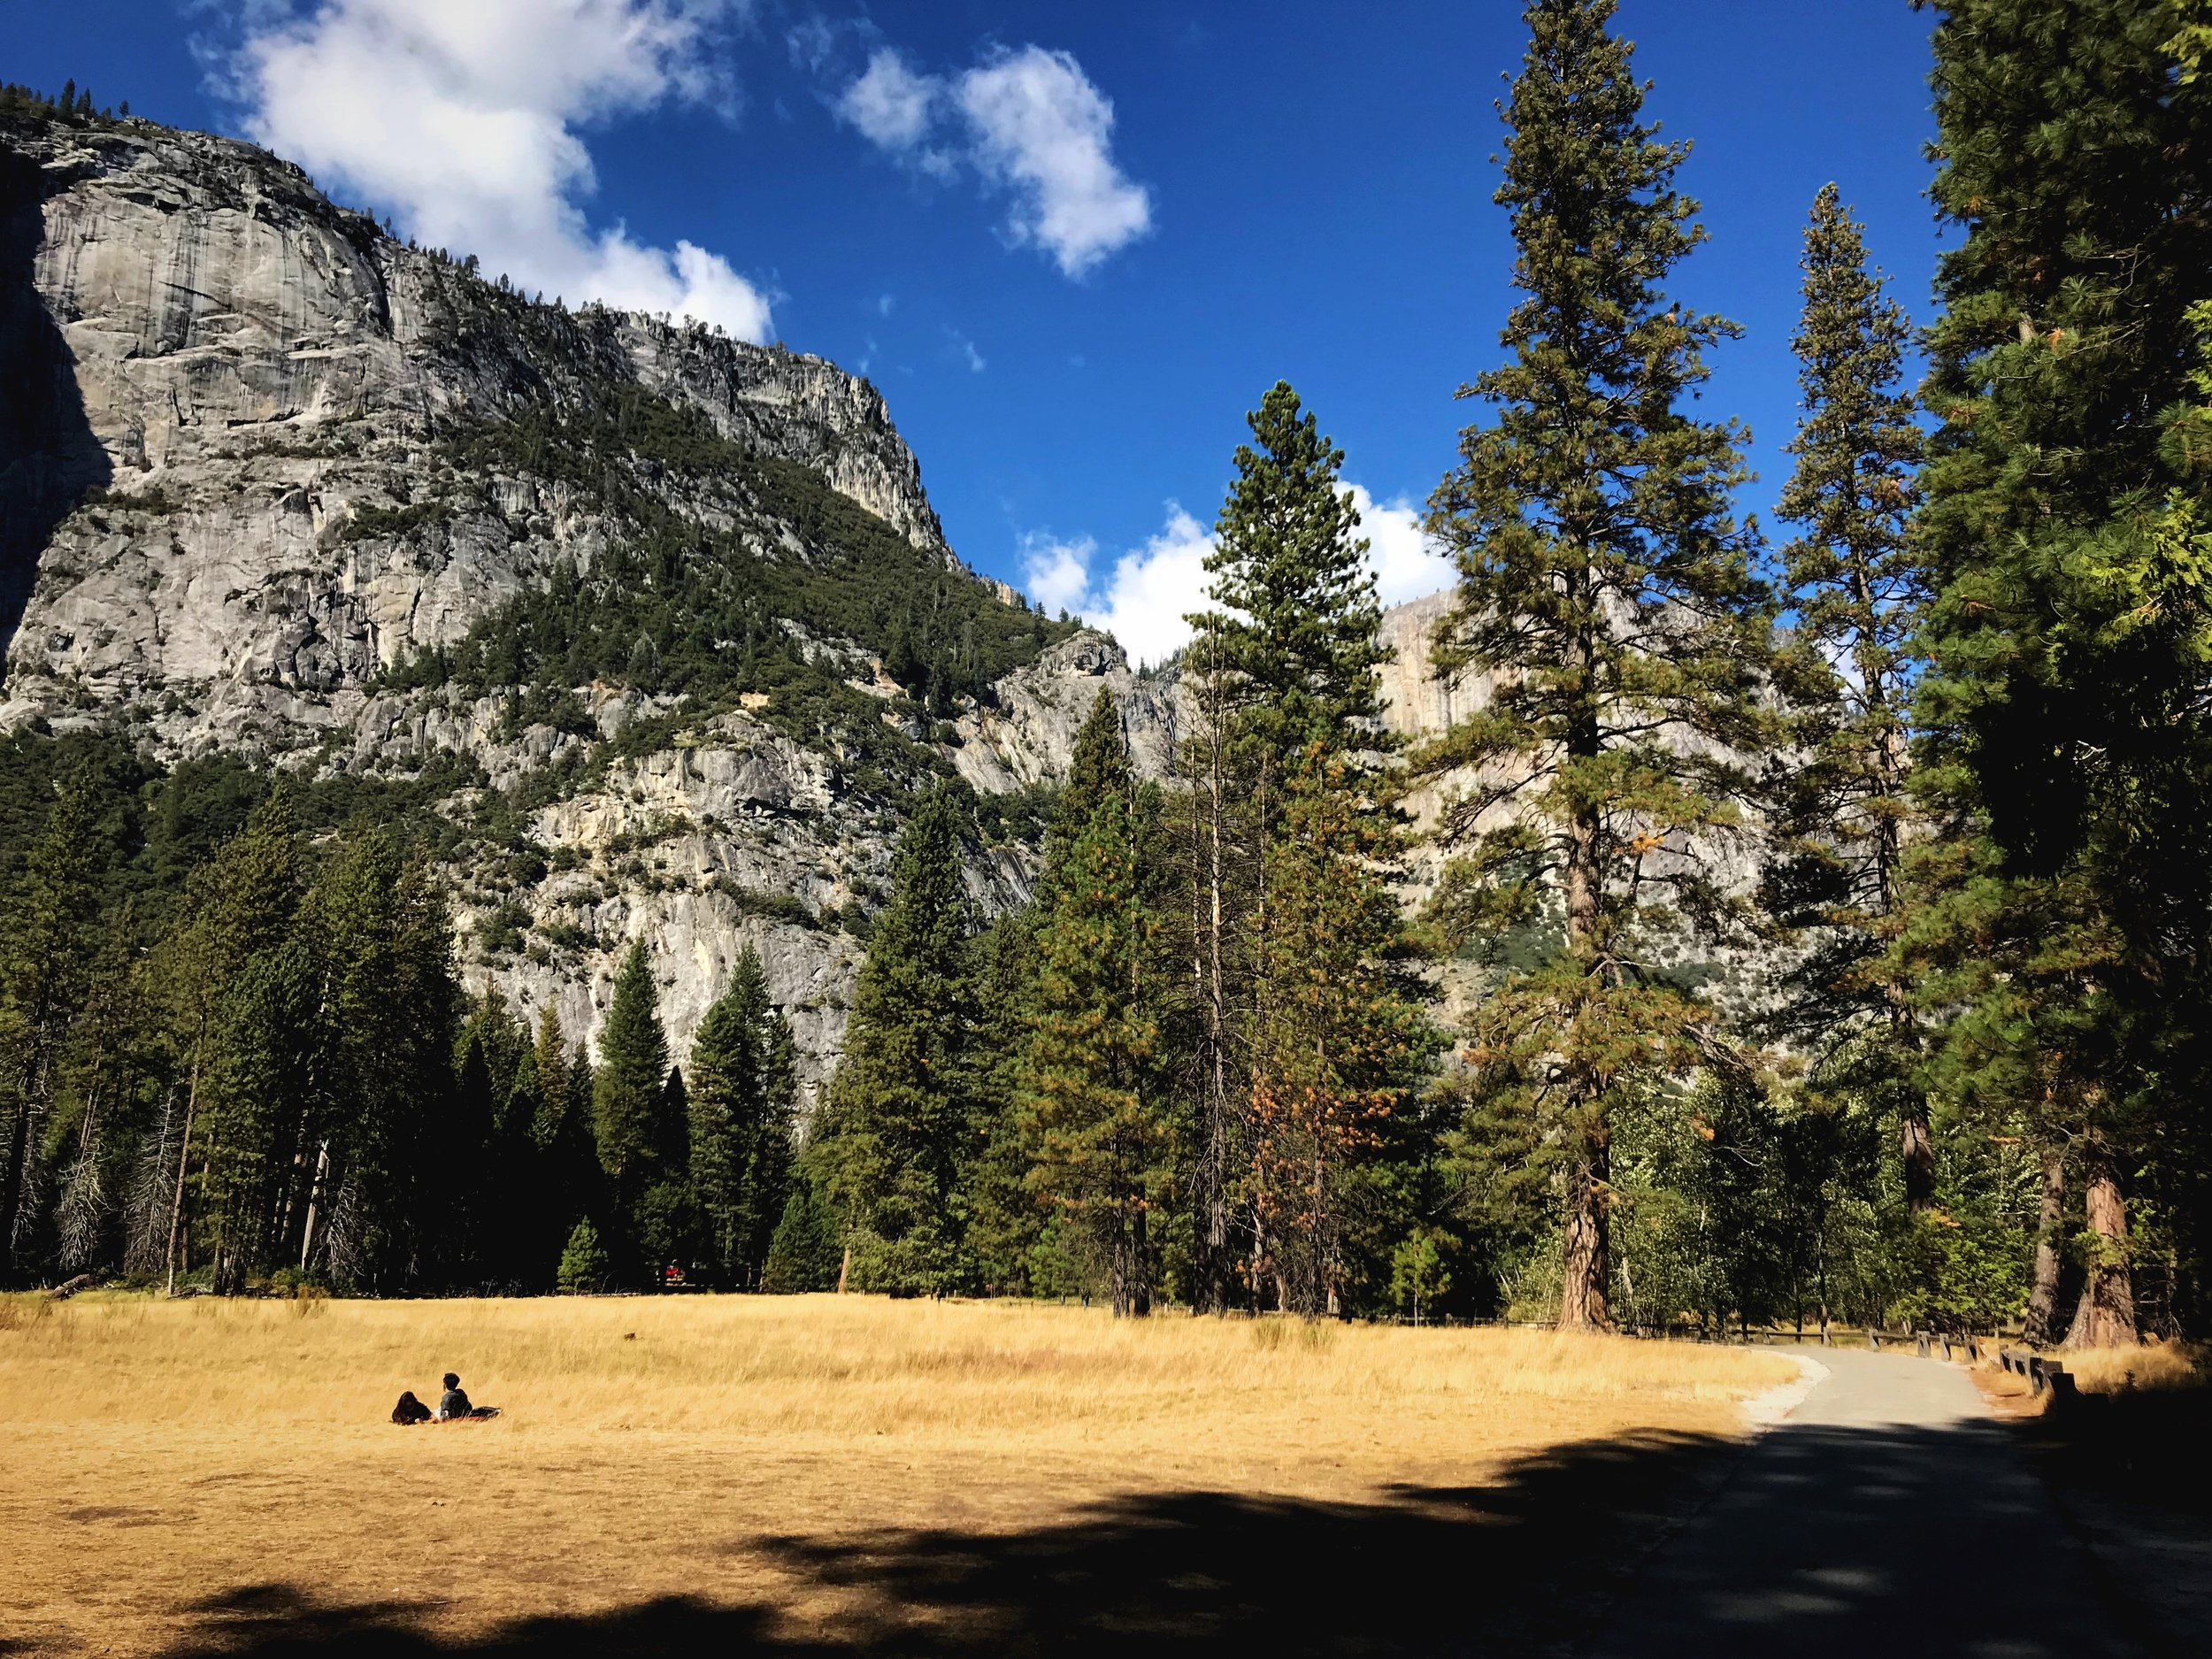 The meadows of Yosemite are the perfect place for a picnic on a sunny fall day.